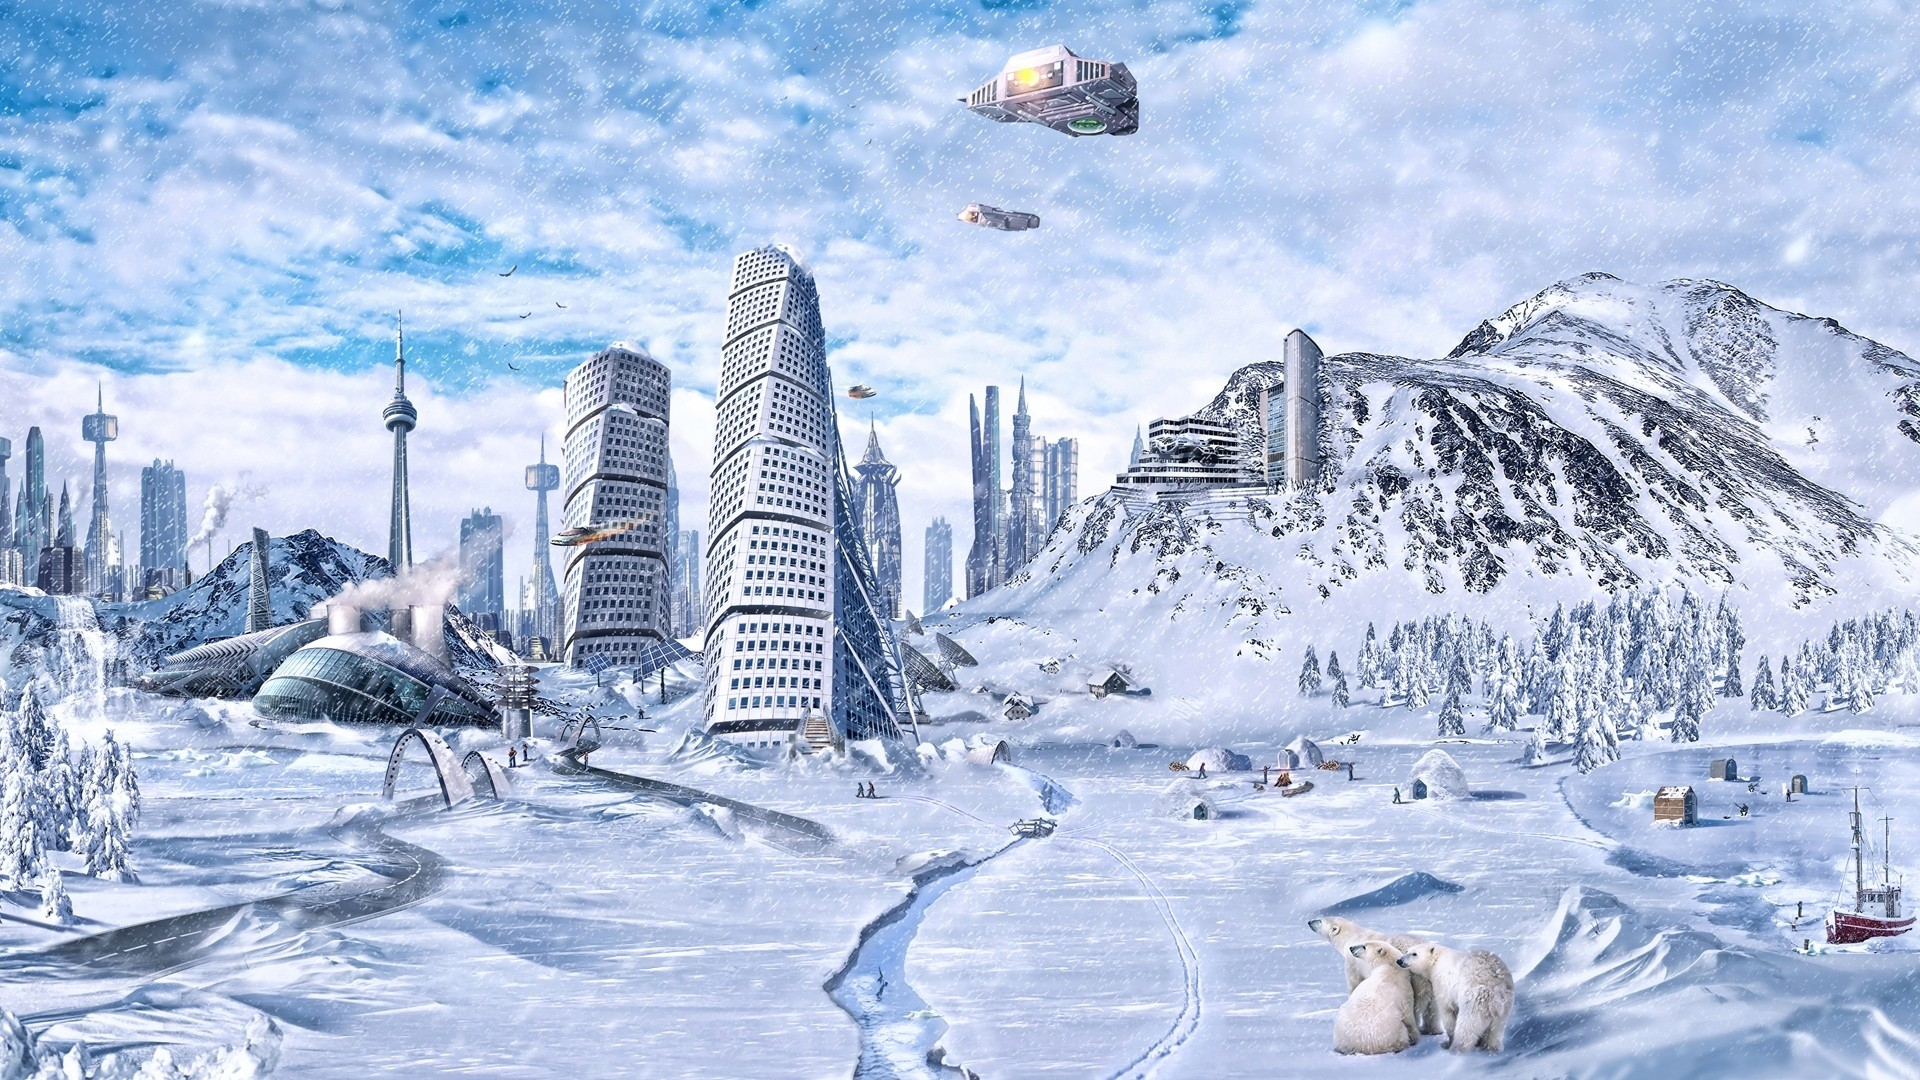 1920x1080 Preview wallpaper planet, world, winter, snow, city, science fiction, future